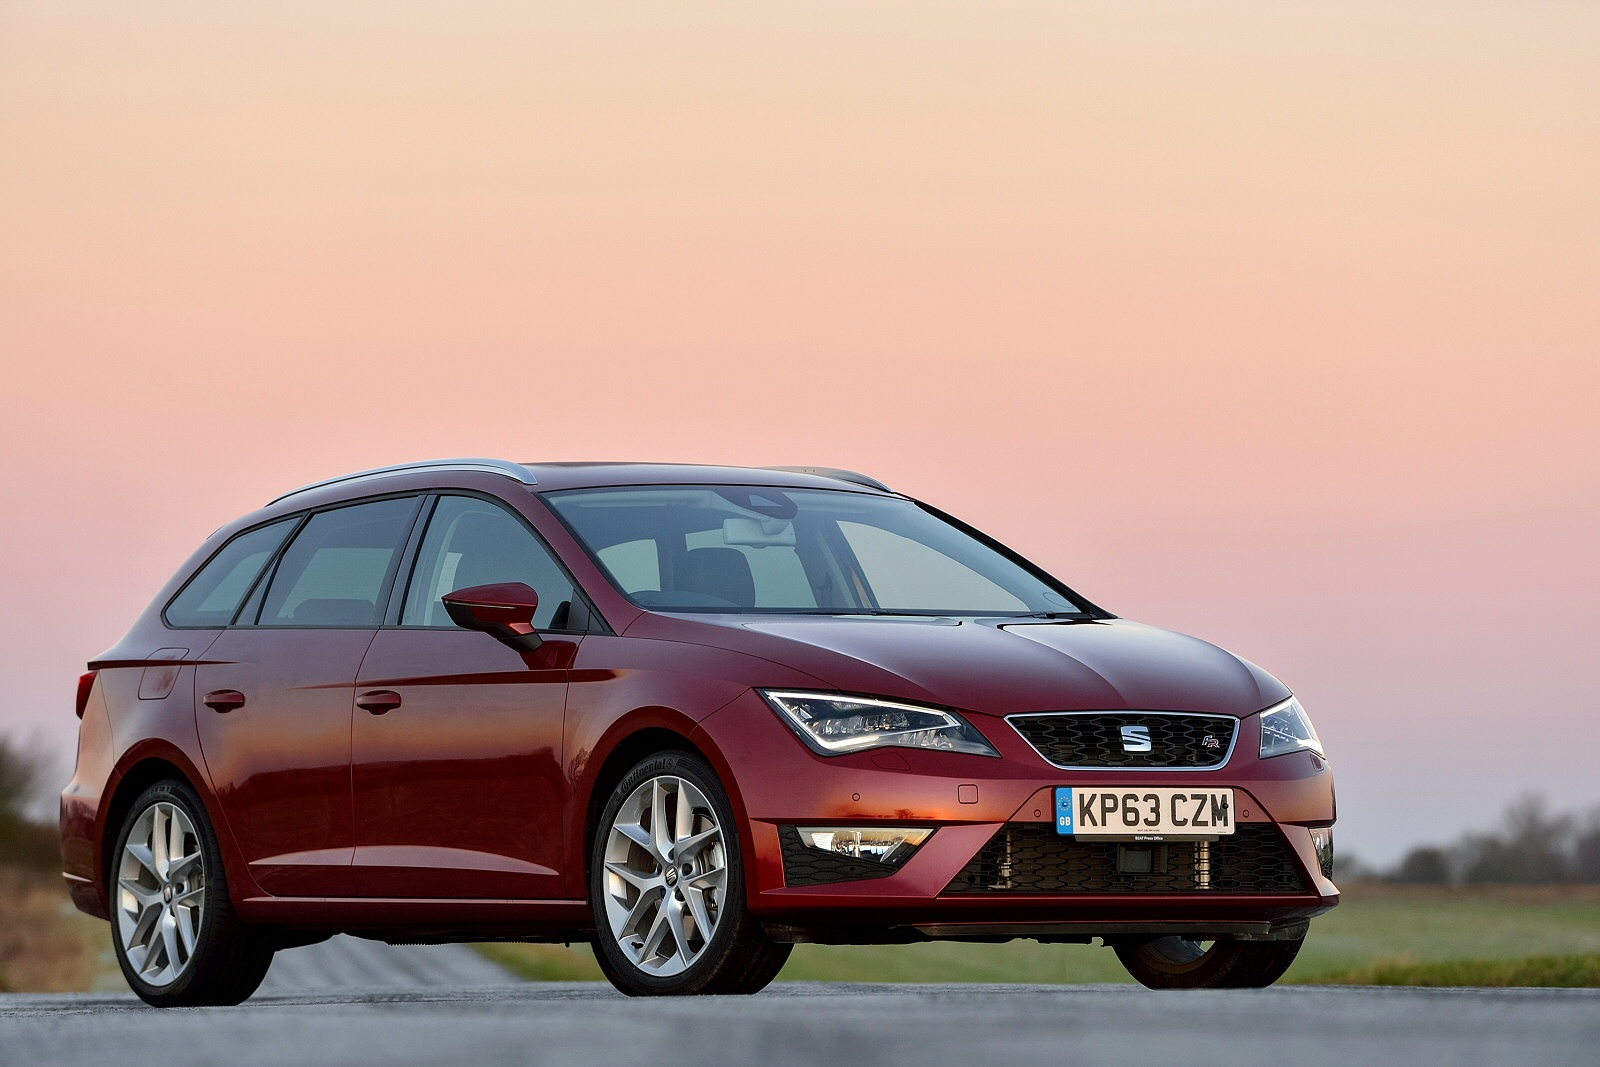 new seat leon 1 4 tsi 125 fr technology 5dr petrol estate. Black Bedroom Furniture Sets. Home Design Ideas